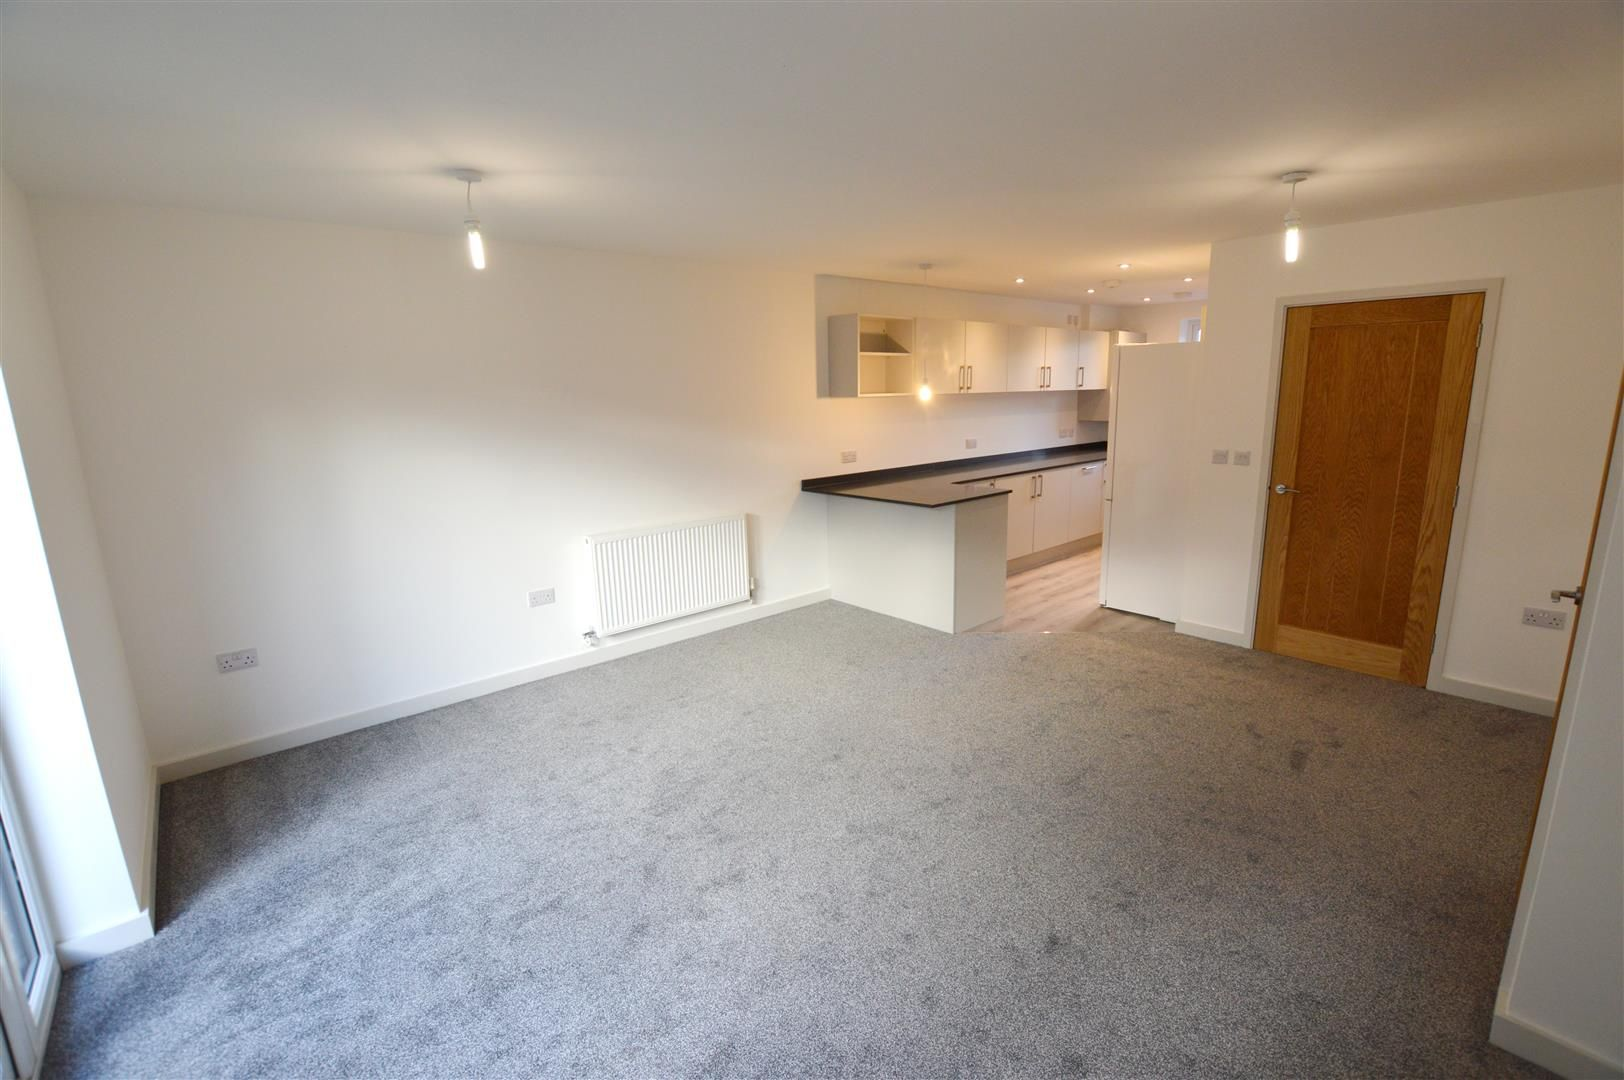 3 bed terraced for sale in Leominster 4